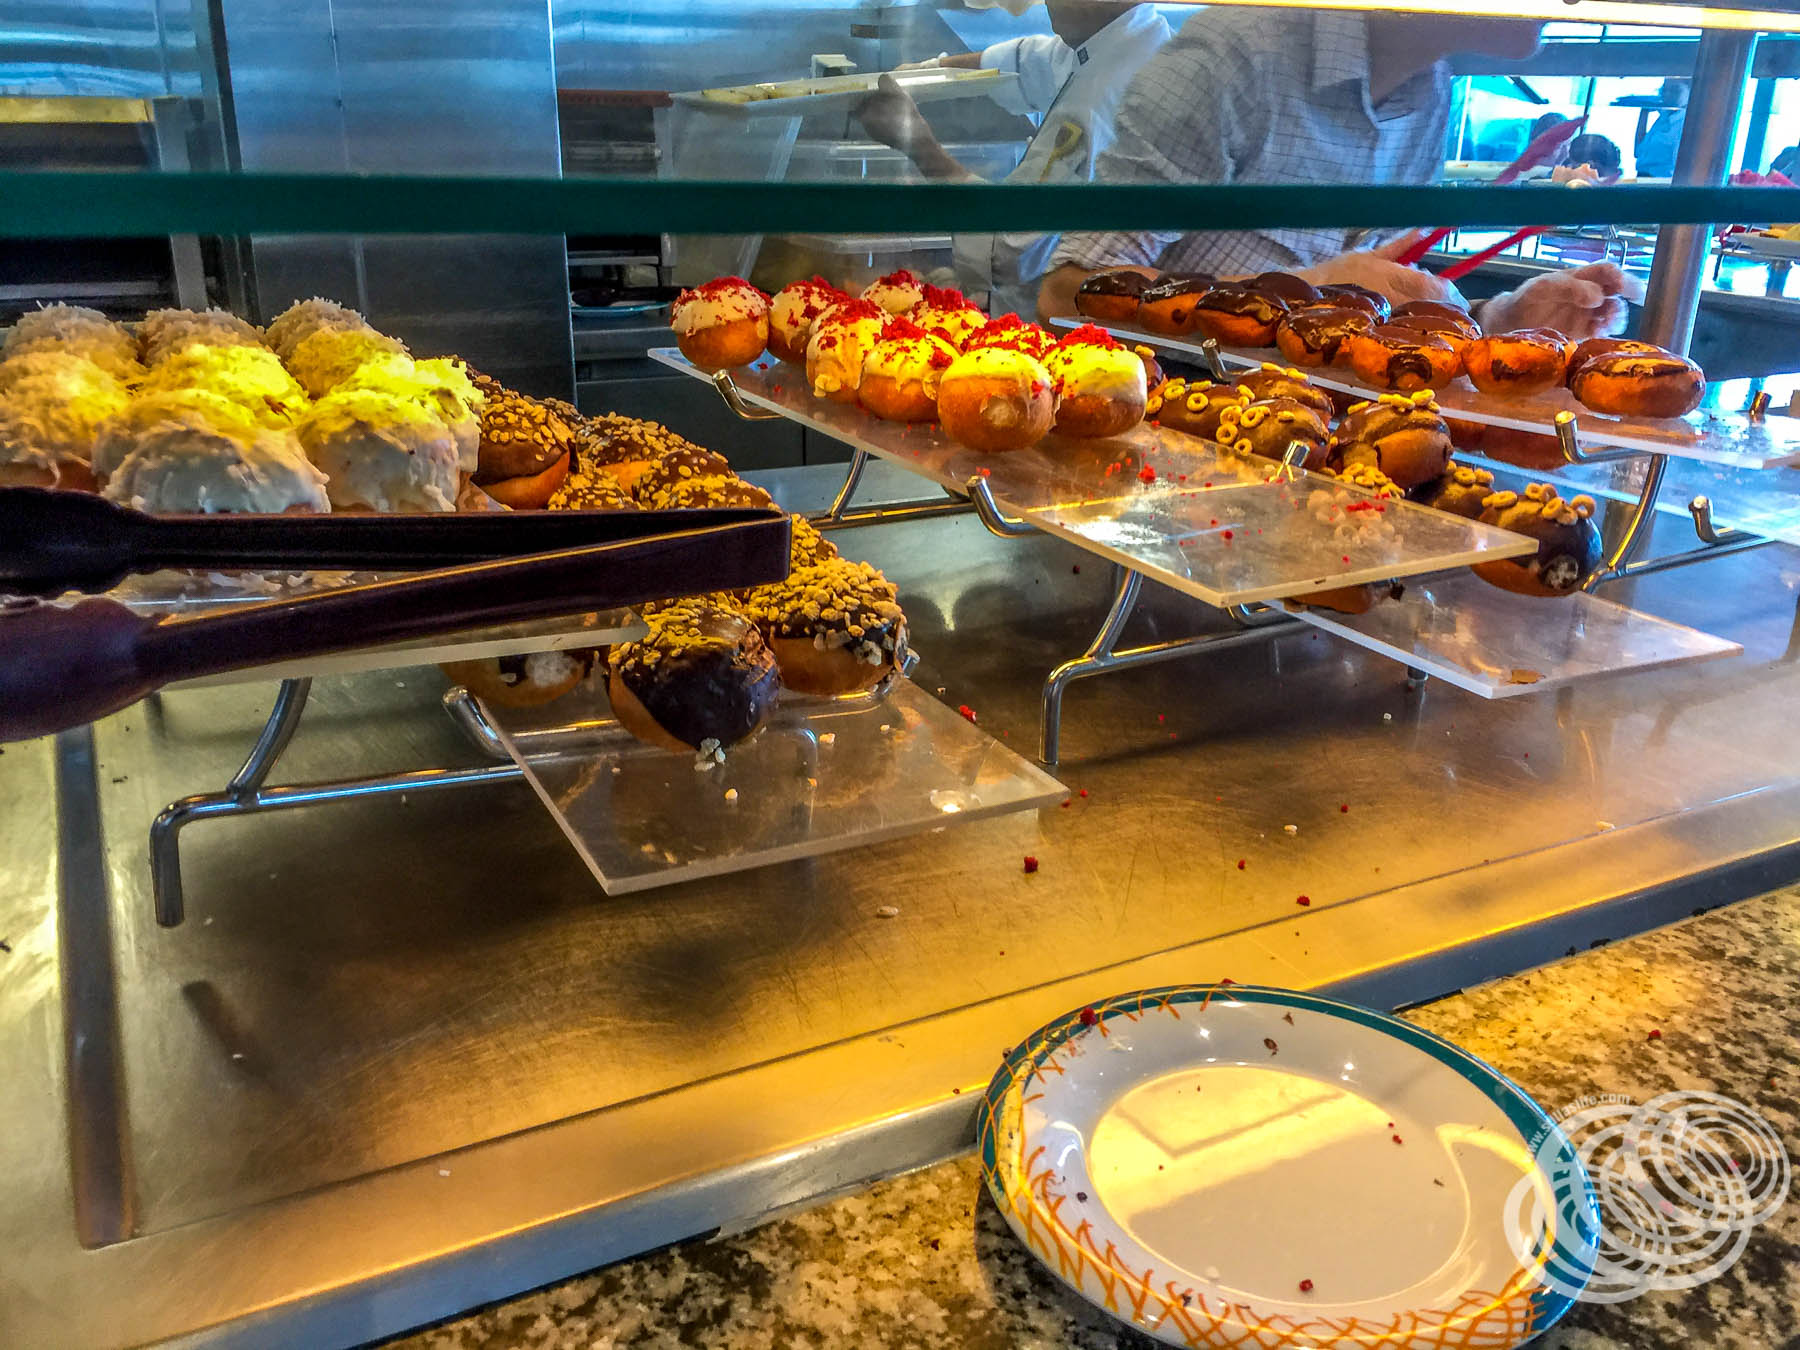 Breakfast Pastries at Windjammer on Explorer of the Seas